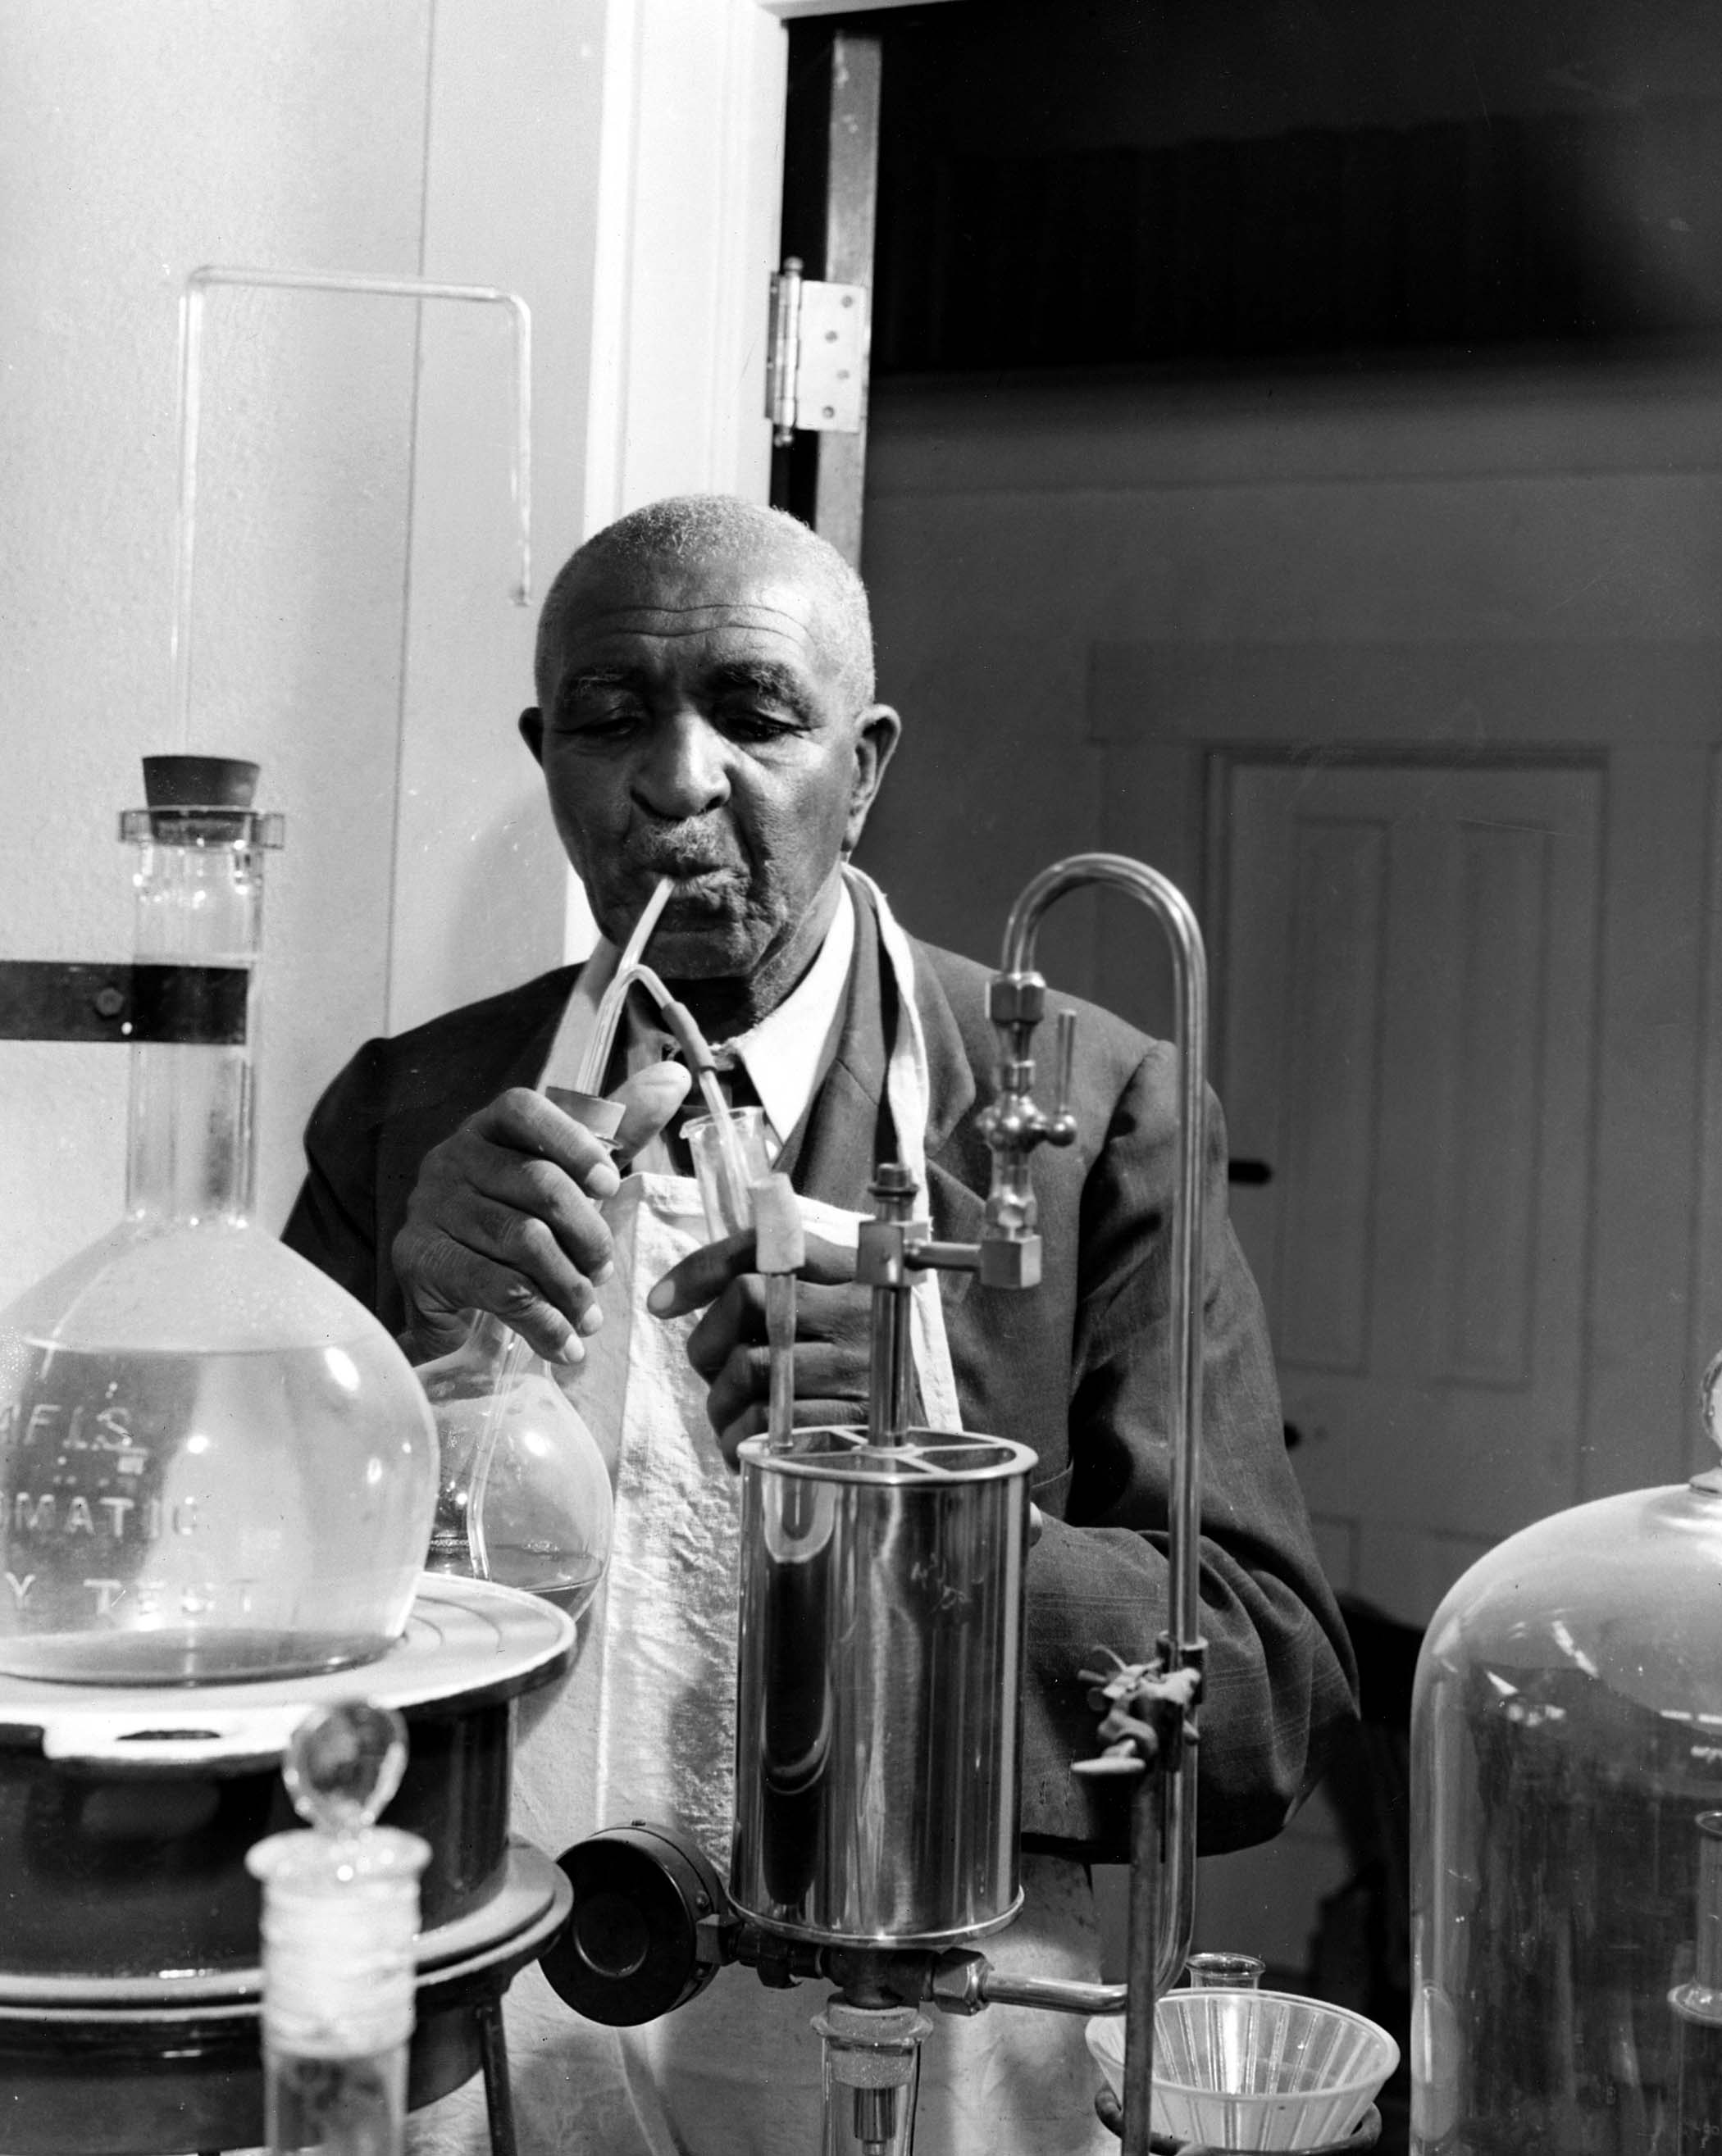 George Washington Carver. Photo via USDA National Agricultural Library